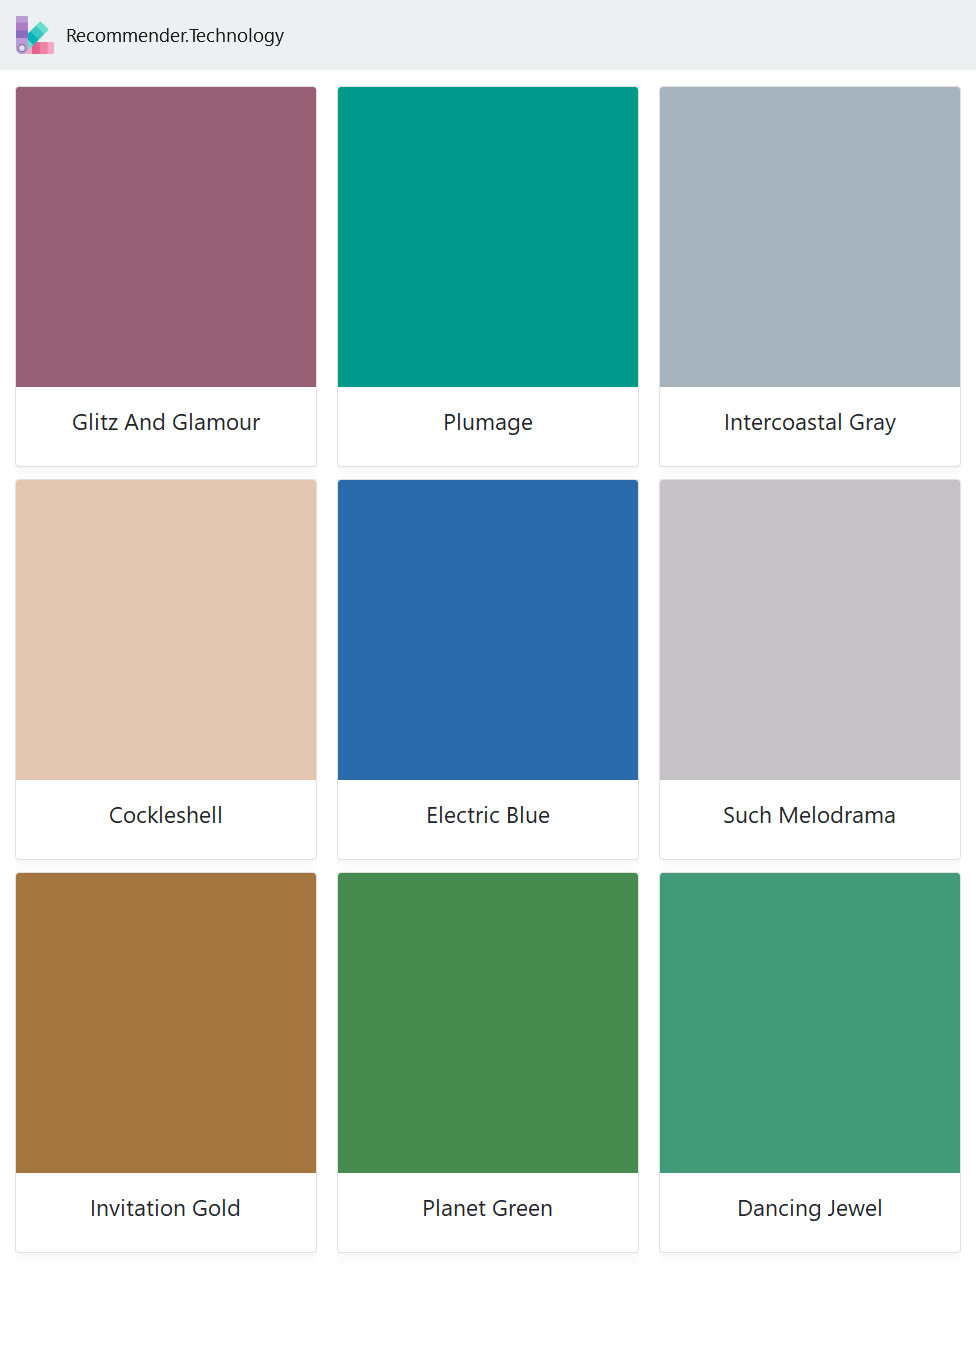 Glitz And Glamour Cockleshell Invitation Gold Plumage Electric Blue Planet Green Intercoastal Gray Such Behr Paint Colors Paint Color Palettes Painting [ 1360 x 976 Pixel ]